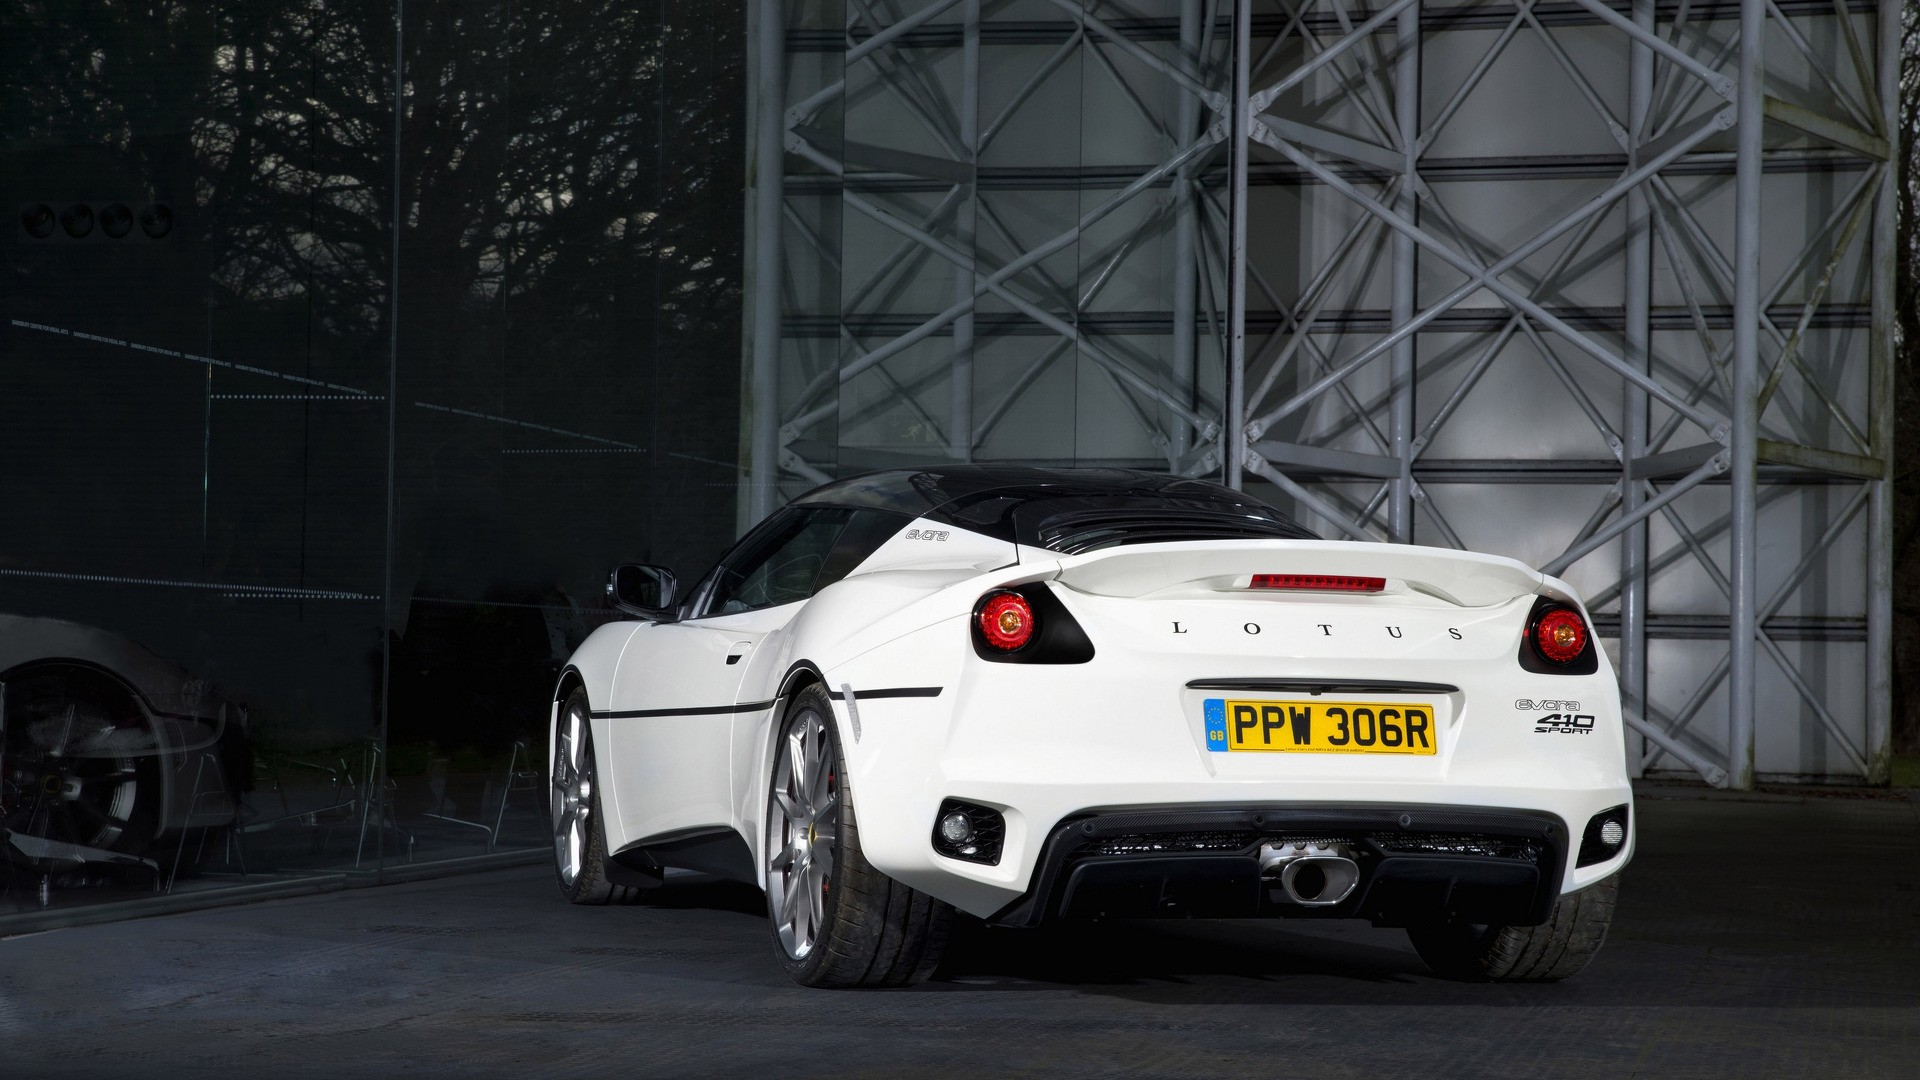 This Lotus Evora Is A Tribute To James Bonds Esprit From